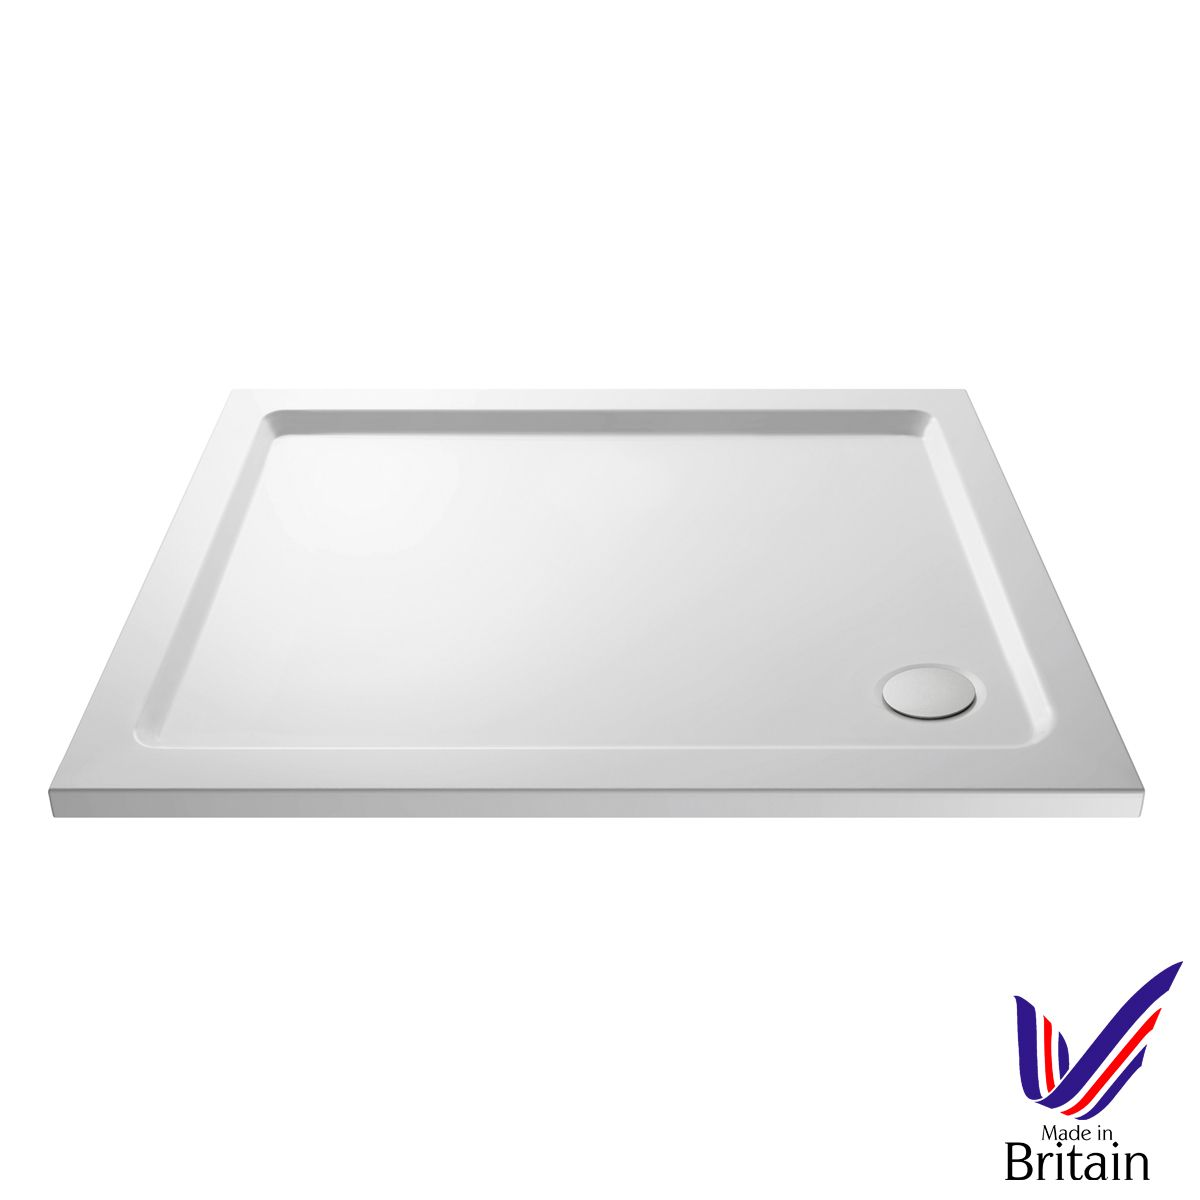 1200 x 900 Shower Tray Rectangular Low Profile by Pearlstone